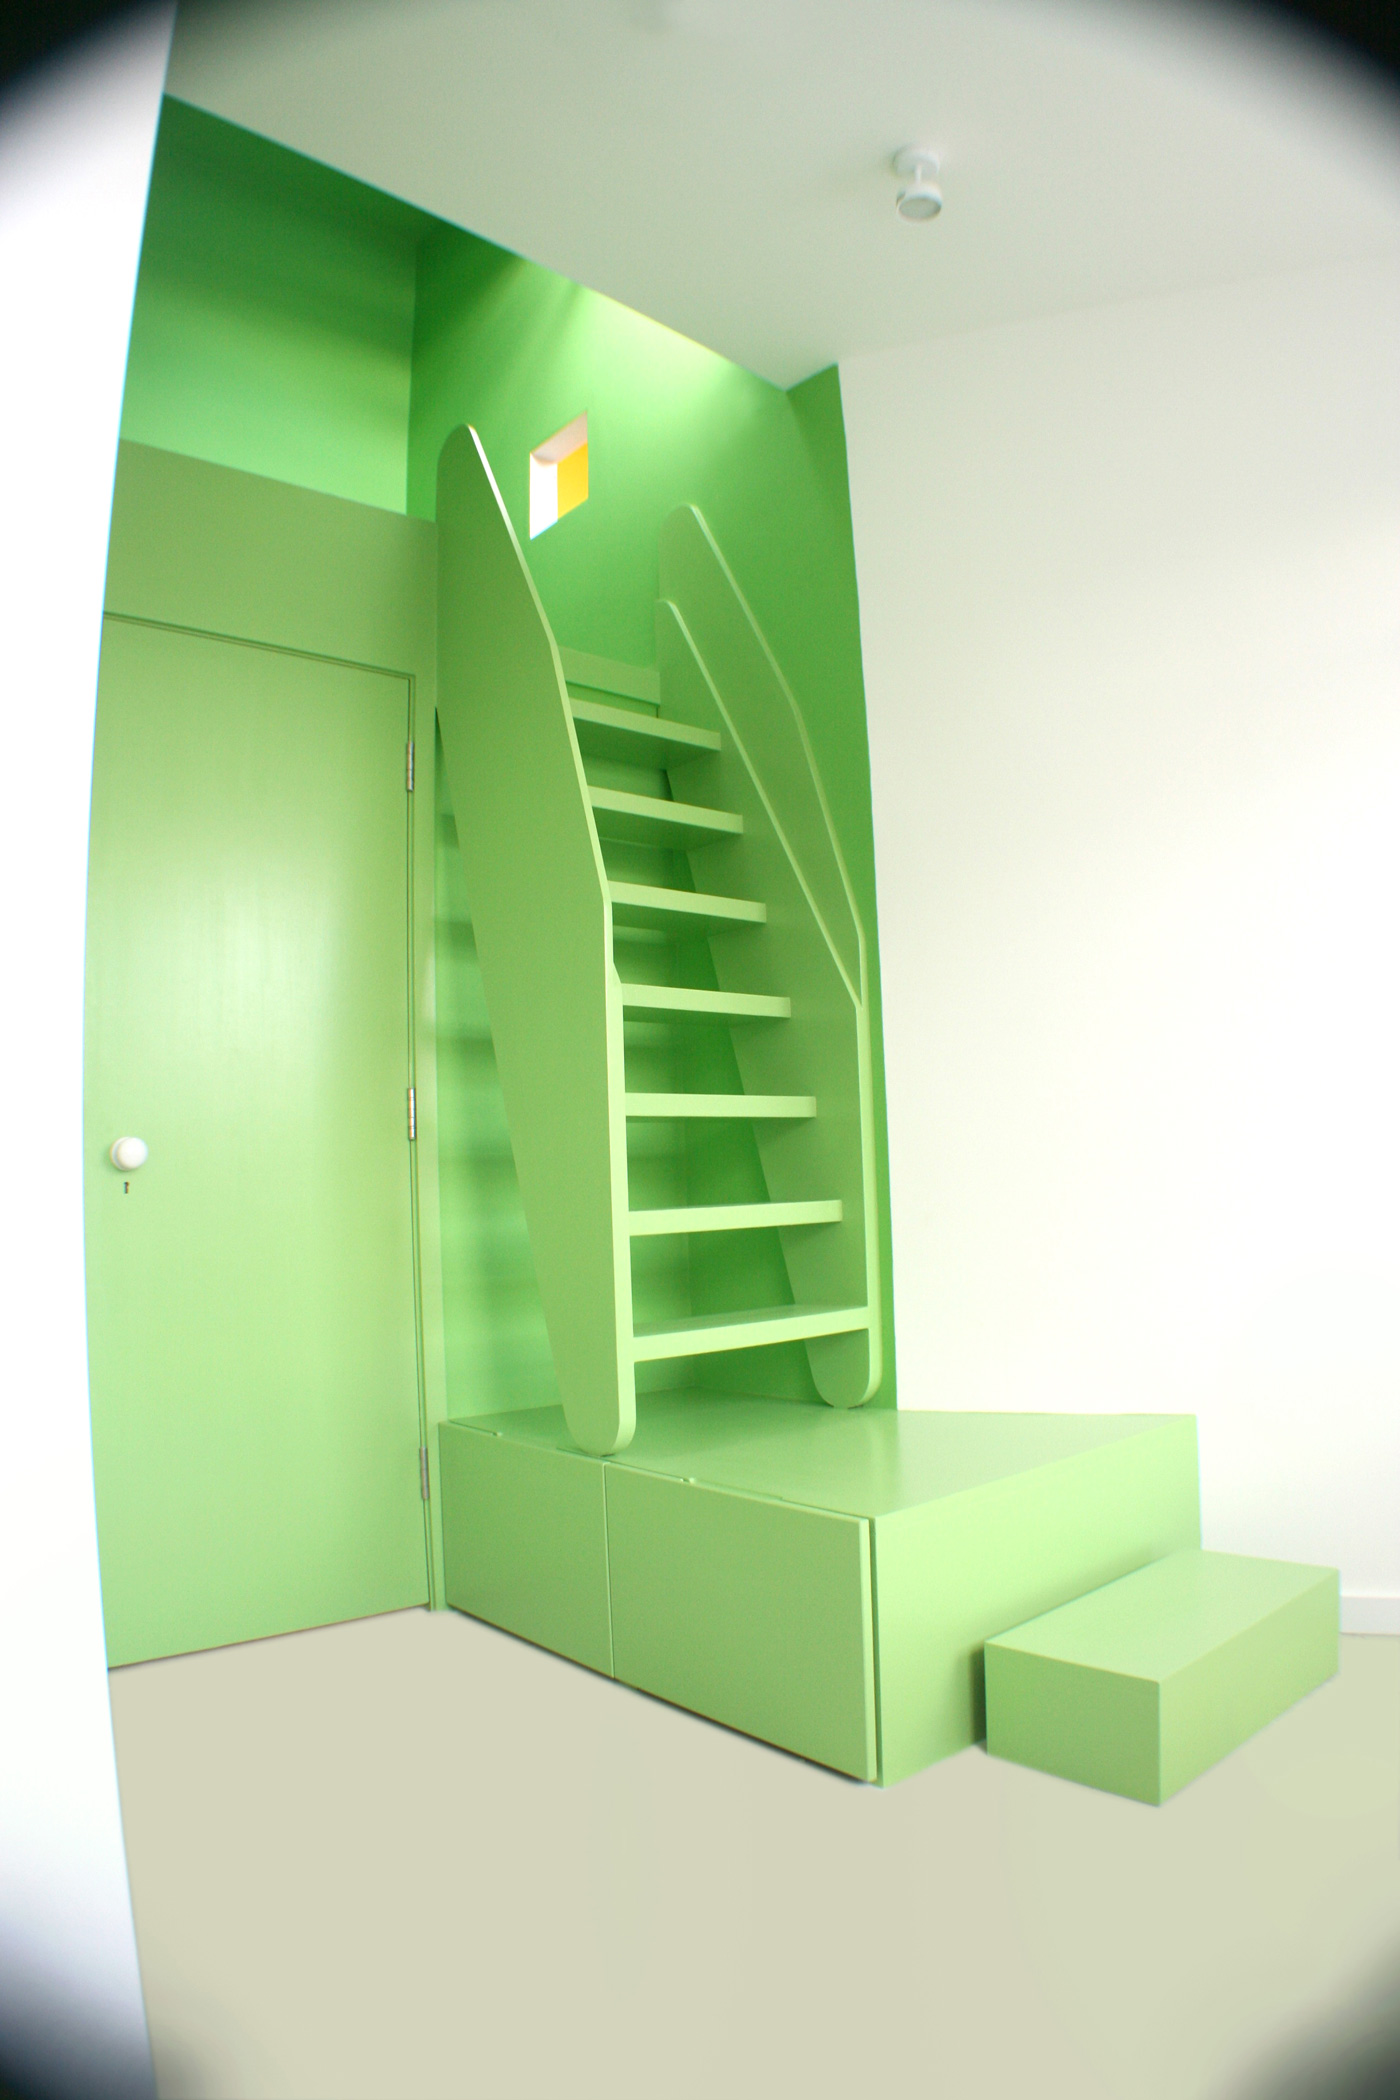 Photo of the green bedroom for the children